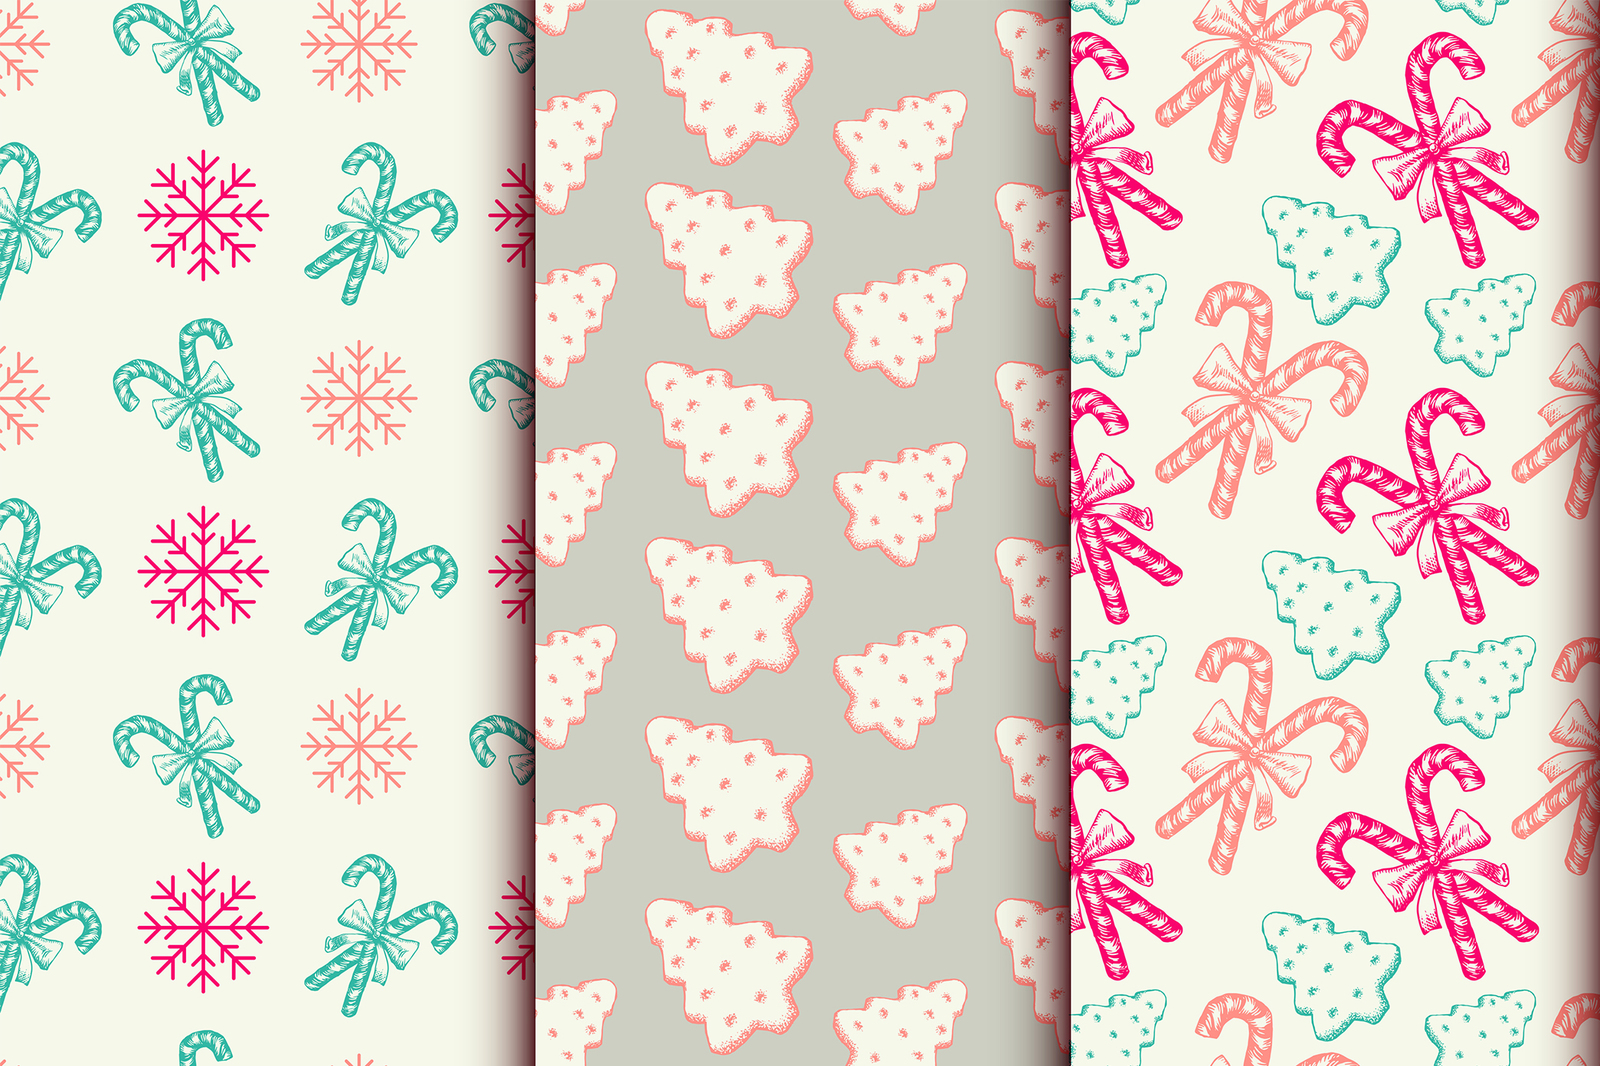 Xmas Patterns Collection and Elements